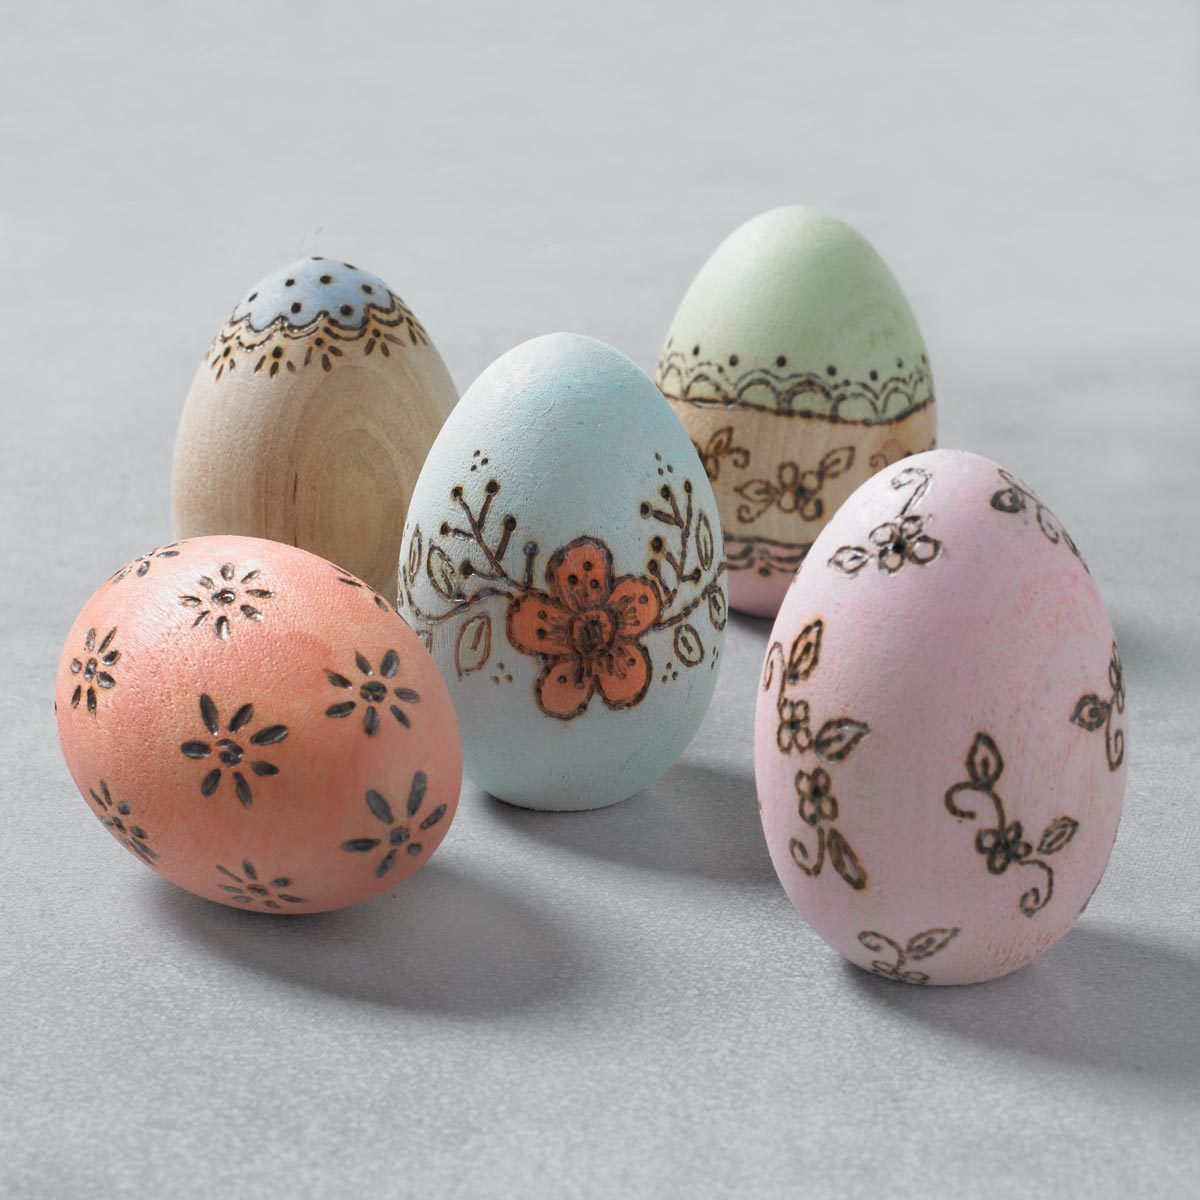 Wood-Burned Easter Eggs and Bowl